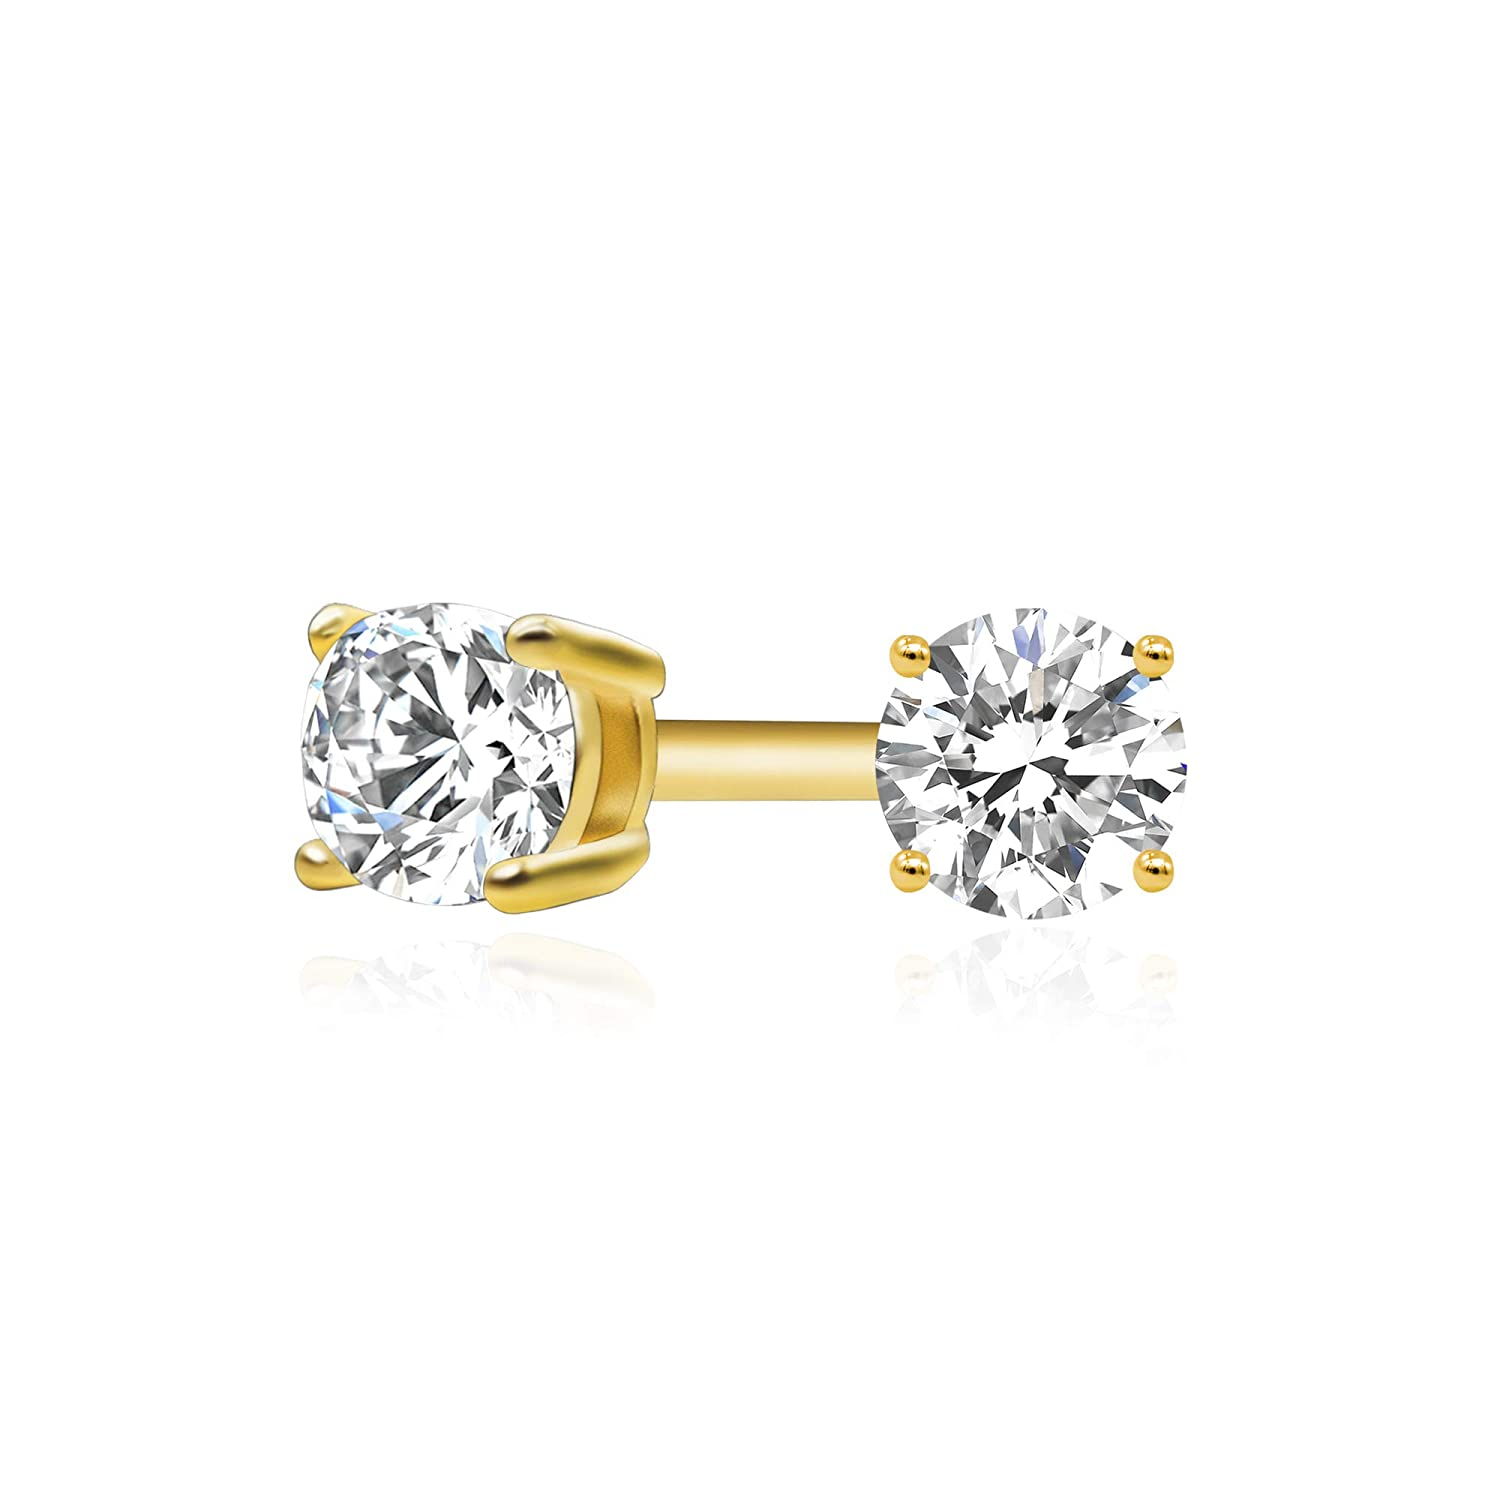 fac813864 Amazon.com: 14k Yellow Gold Plated 925 Sterling Silver Cubic Zirconia  Classic Basket Prong Set Eternity Stud Earrings, 2mm: Jewelry